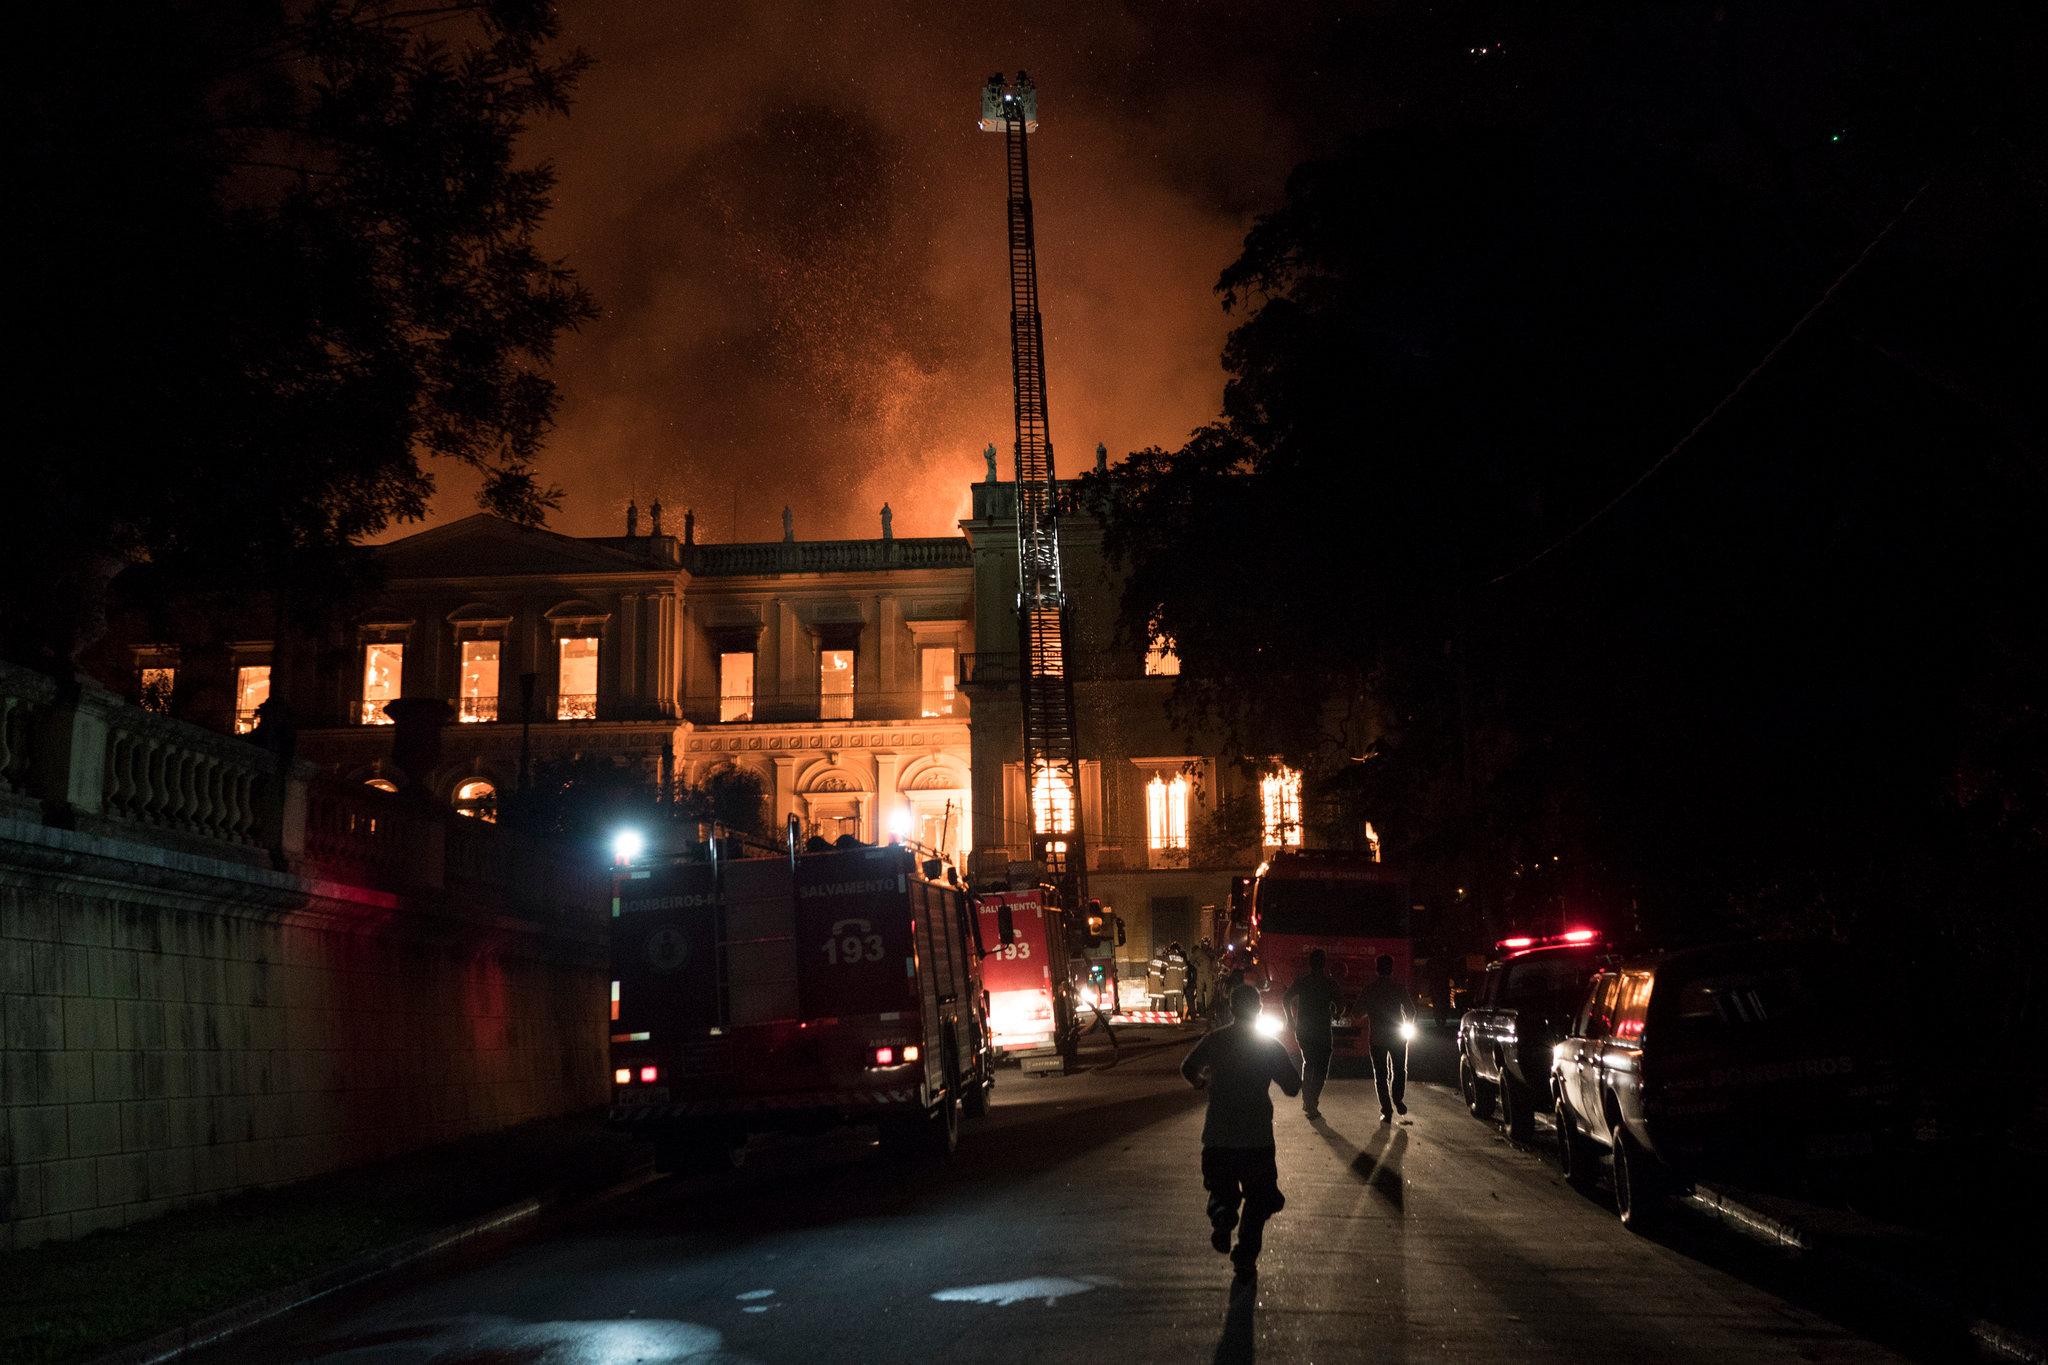 Firefighters battling a blaze on Sunday at the 200-year-old National Museum of Brazil in Rio de Janeiro. (Credit: Leo Correa/Associated Press)